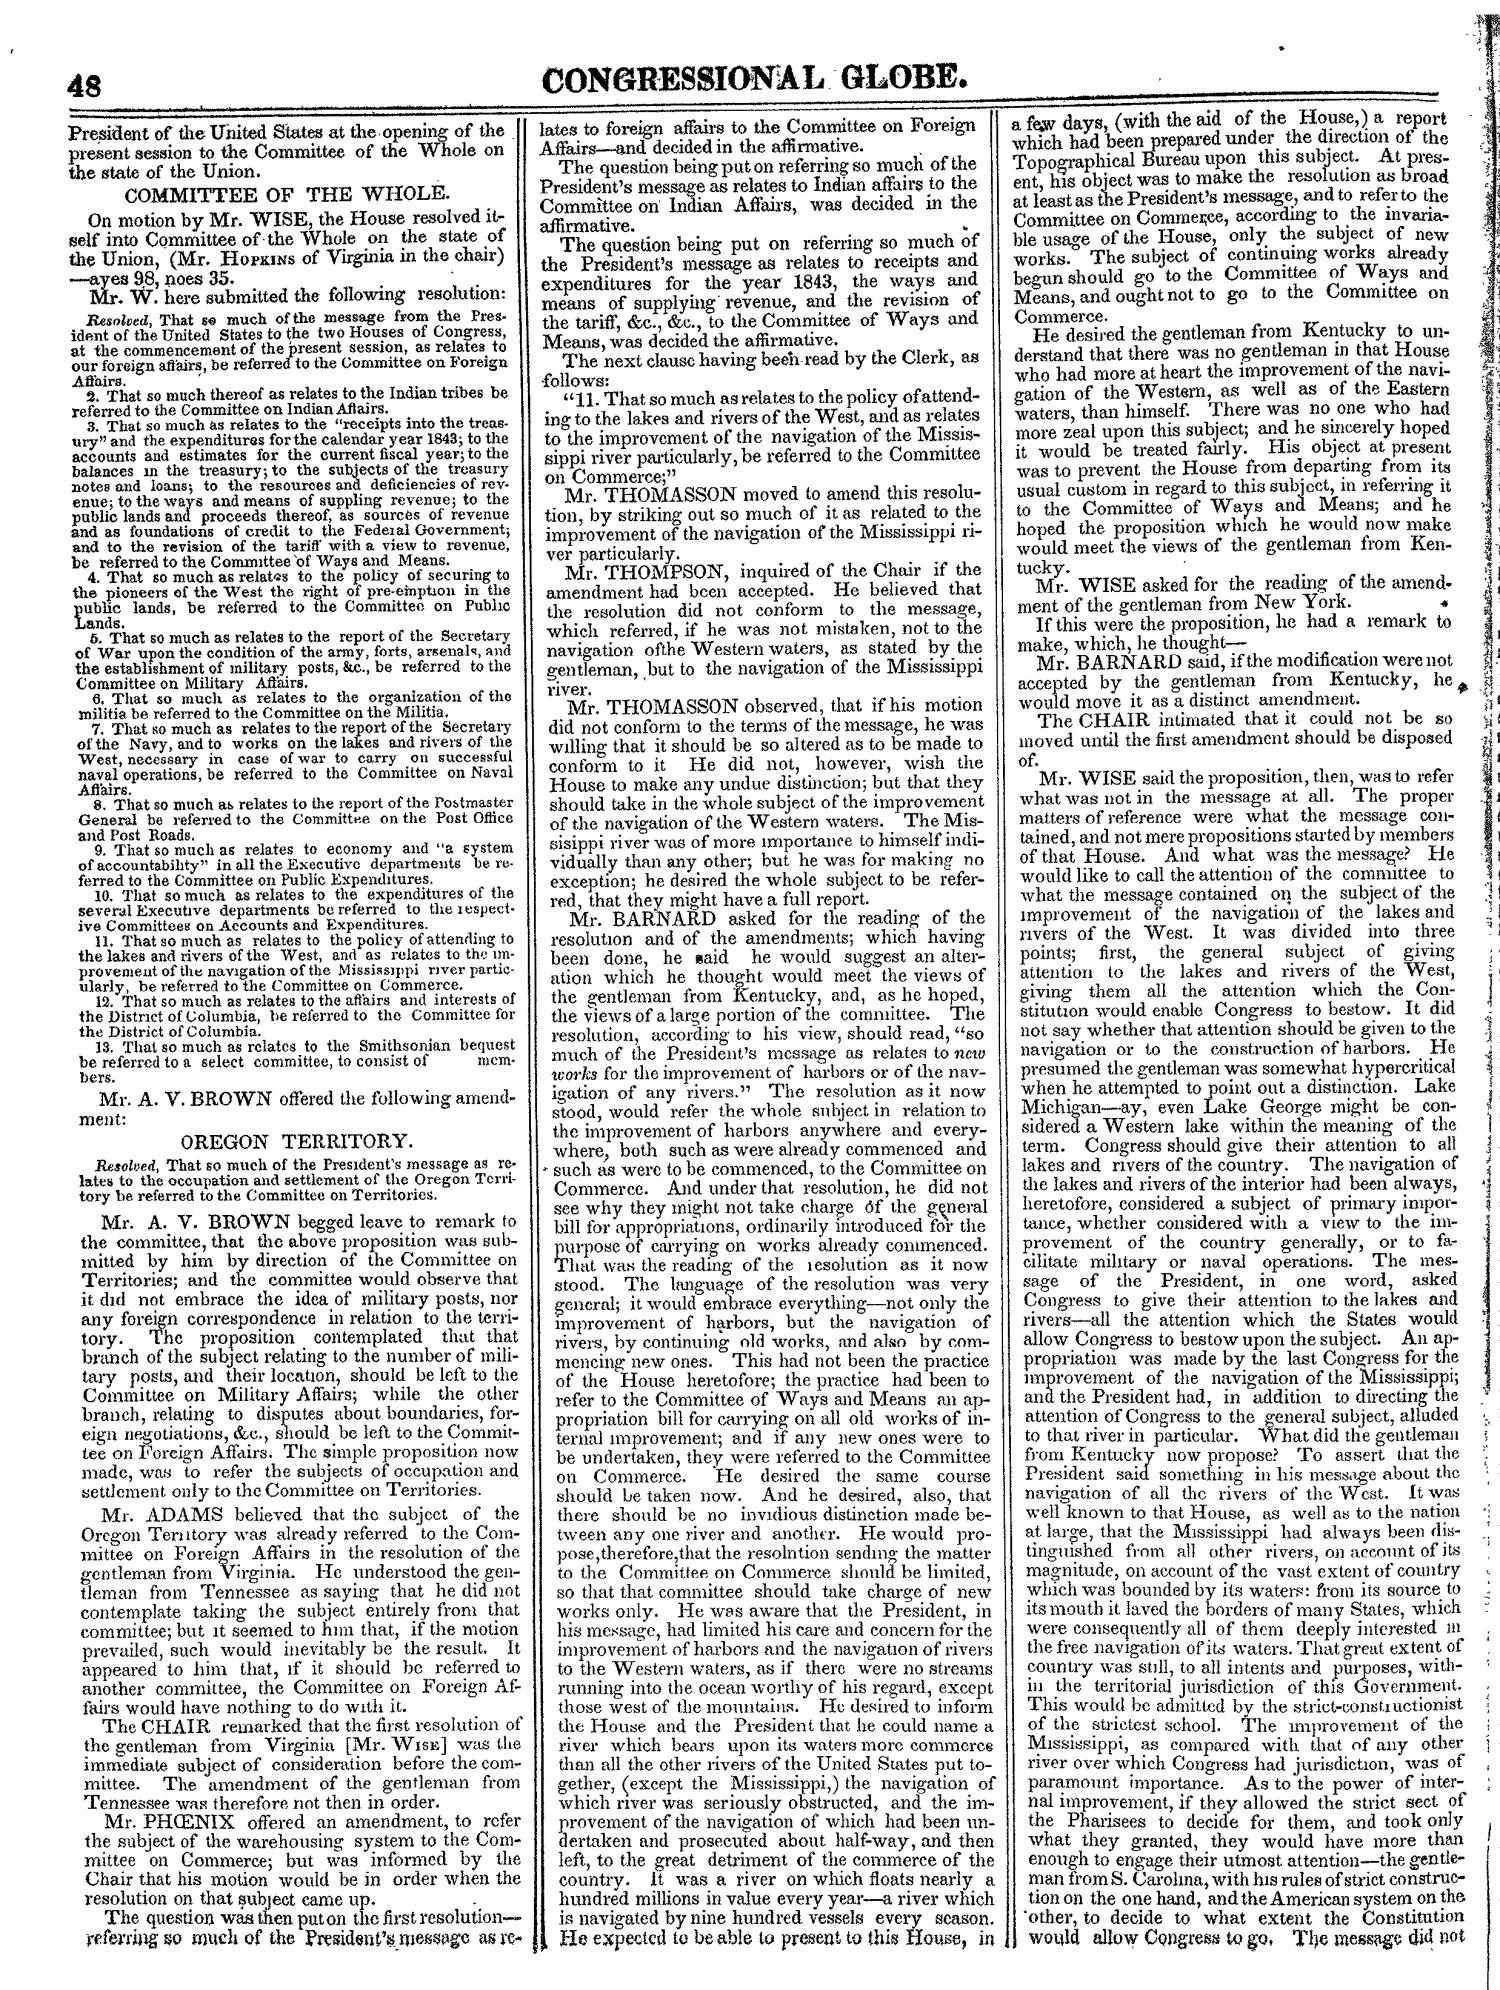 The Congressional Globe, Volume 13, Part 1: Twenty-Eighth Congress, First Session                                                                                                      48